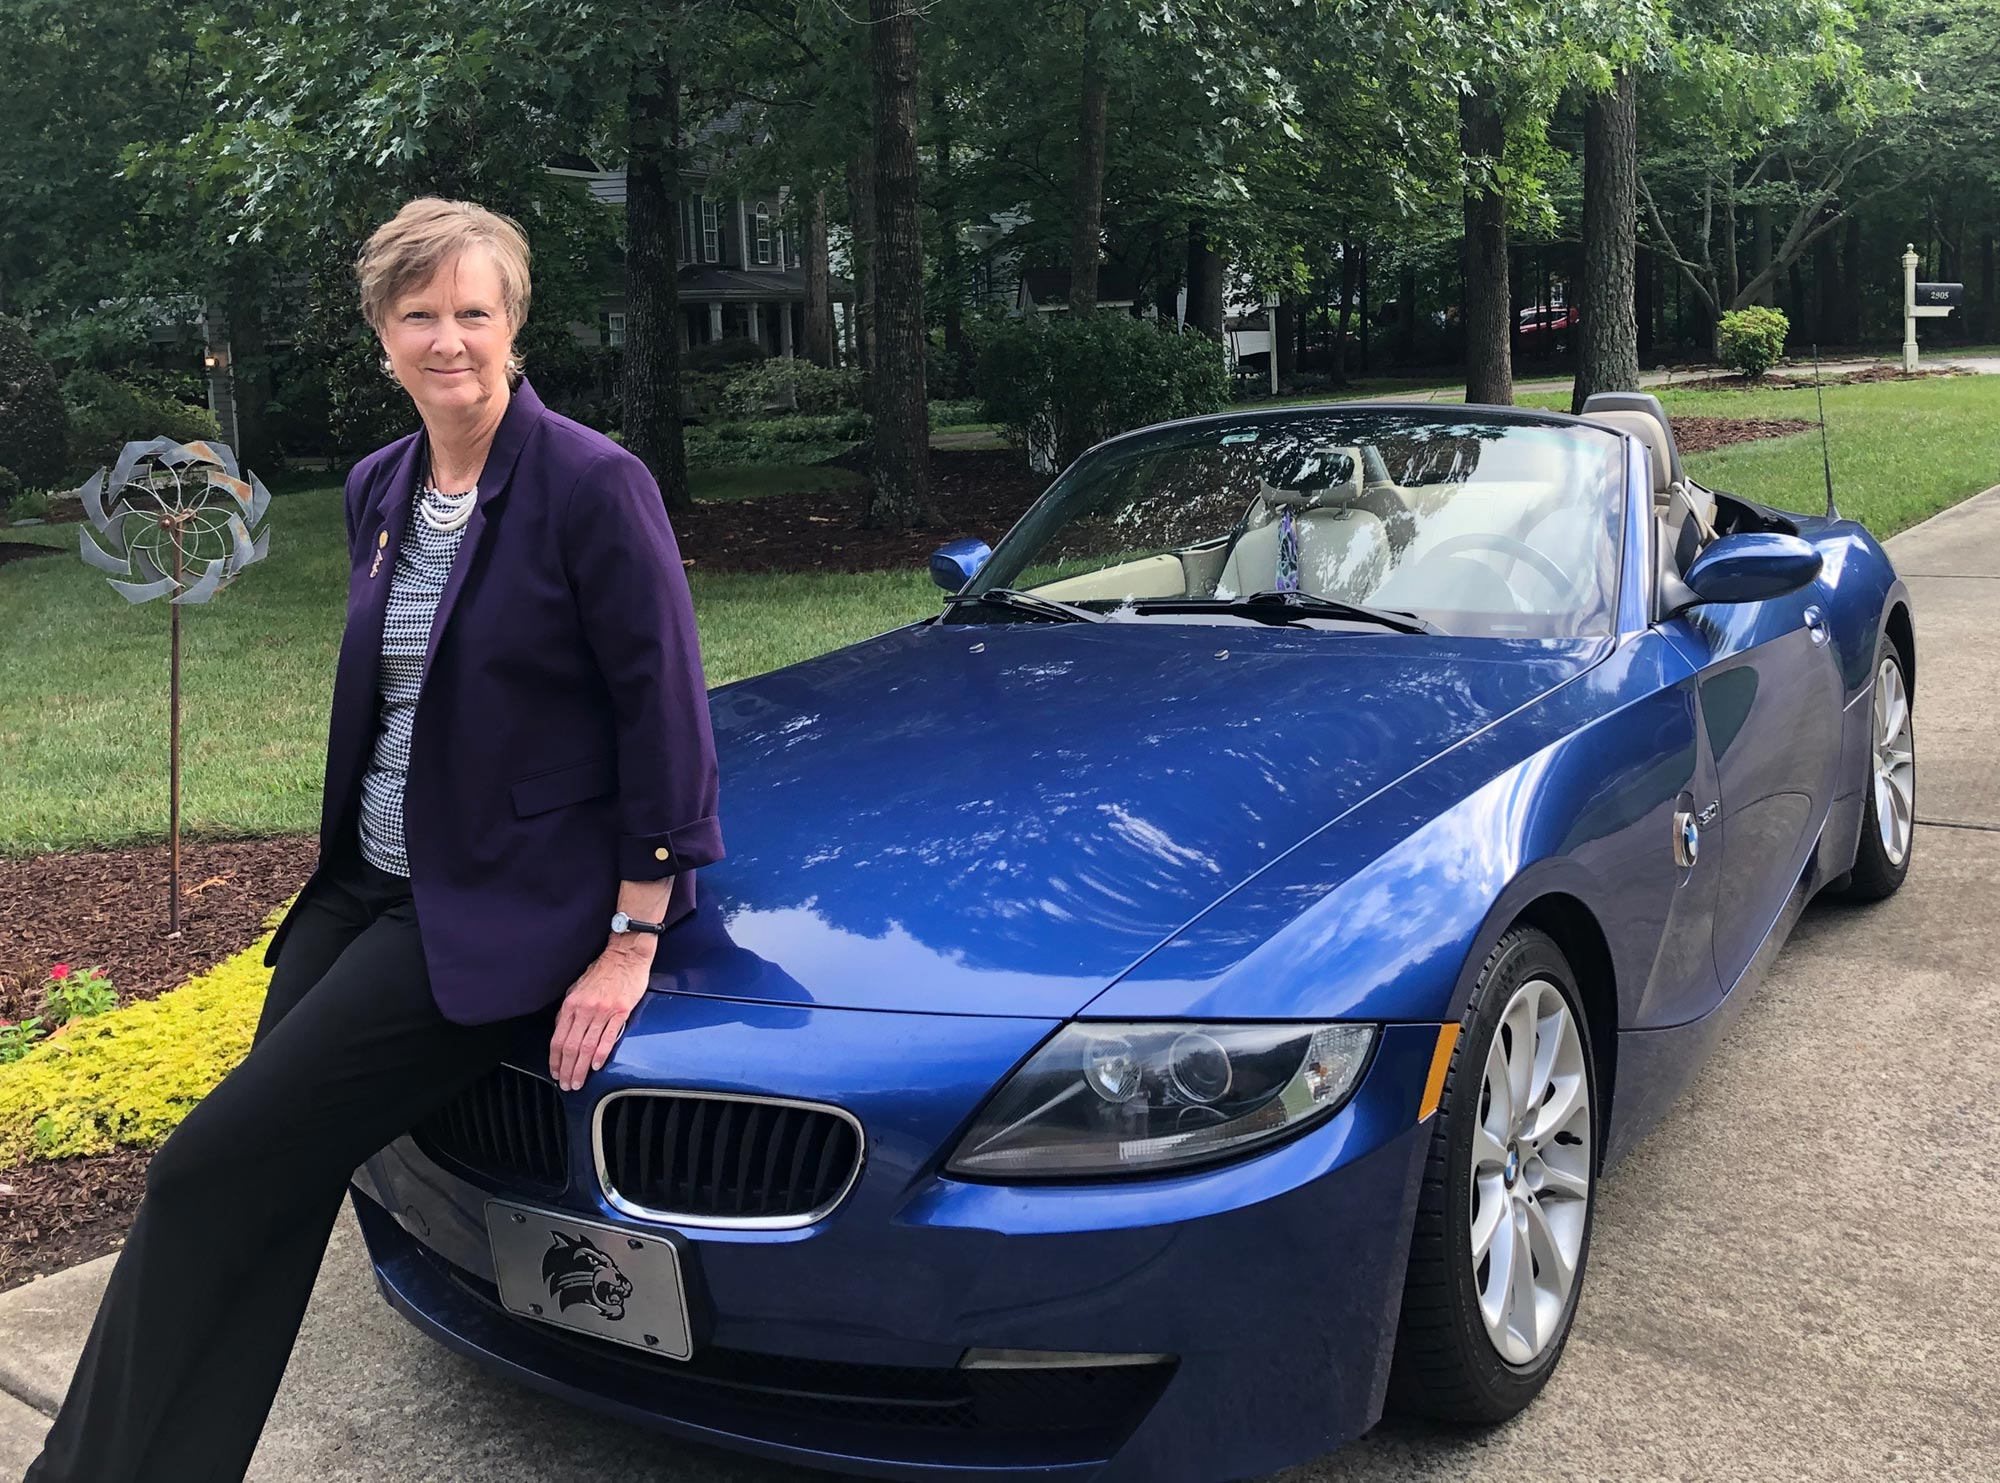 Donna Winbon and her blue BMW convertable